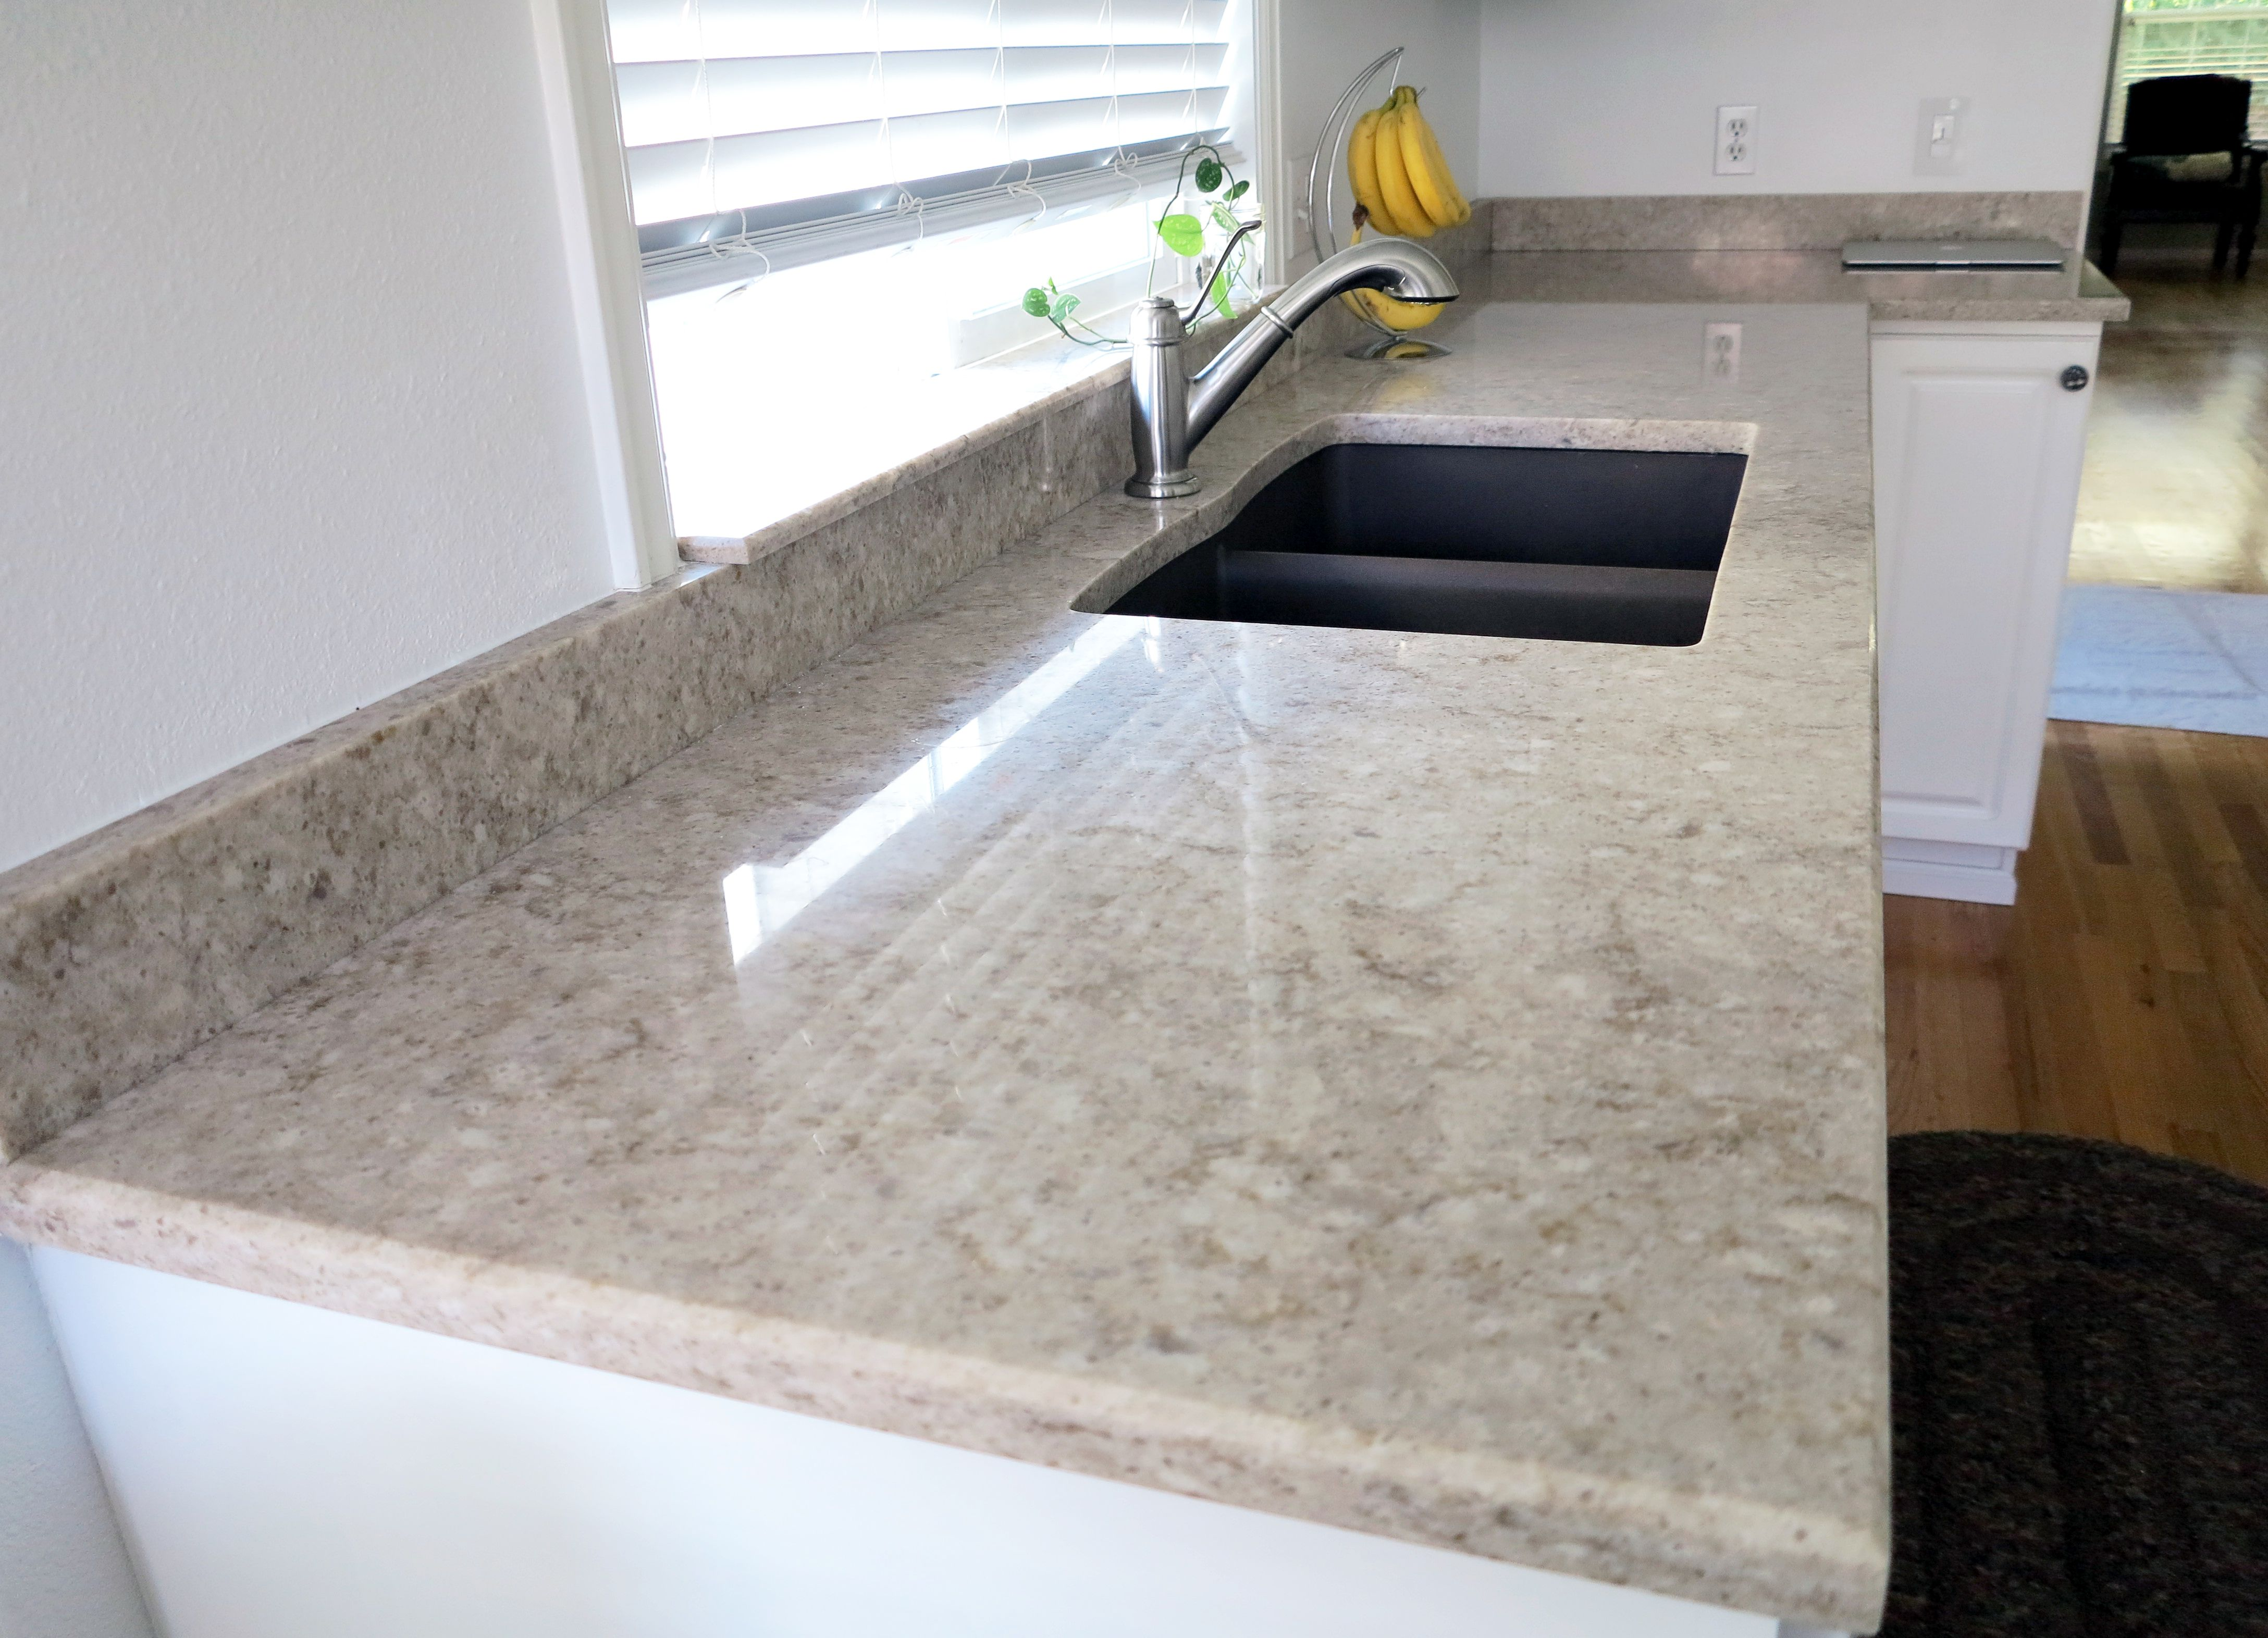 Silestone Quartz Countertop Available To Order From Fiorano Tile Showrooms And Country Tile By Fiorano On Lo